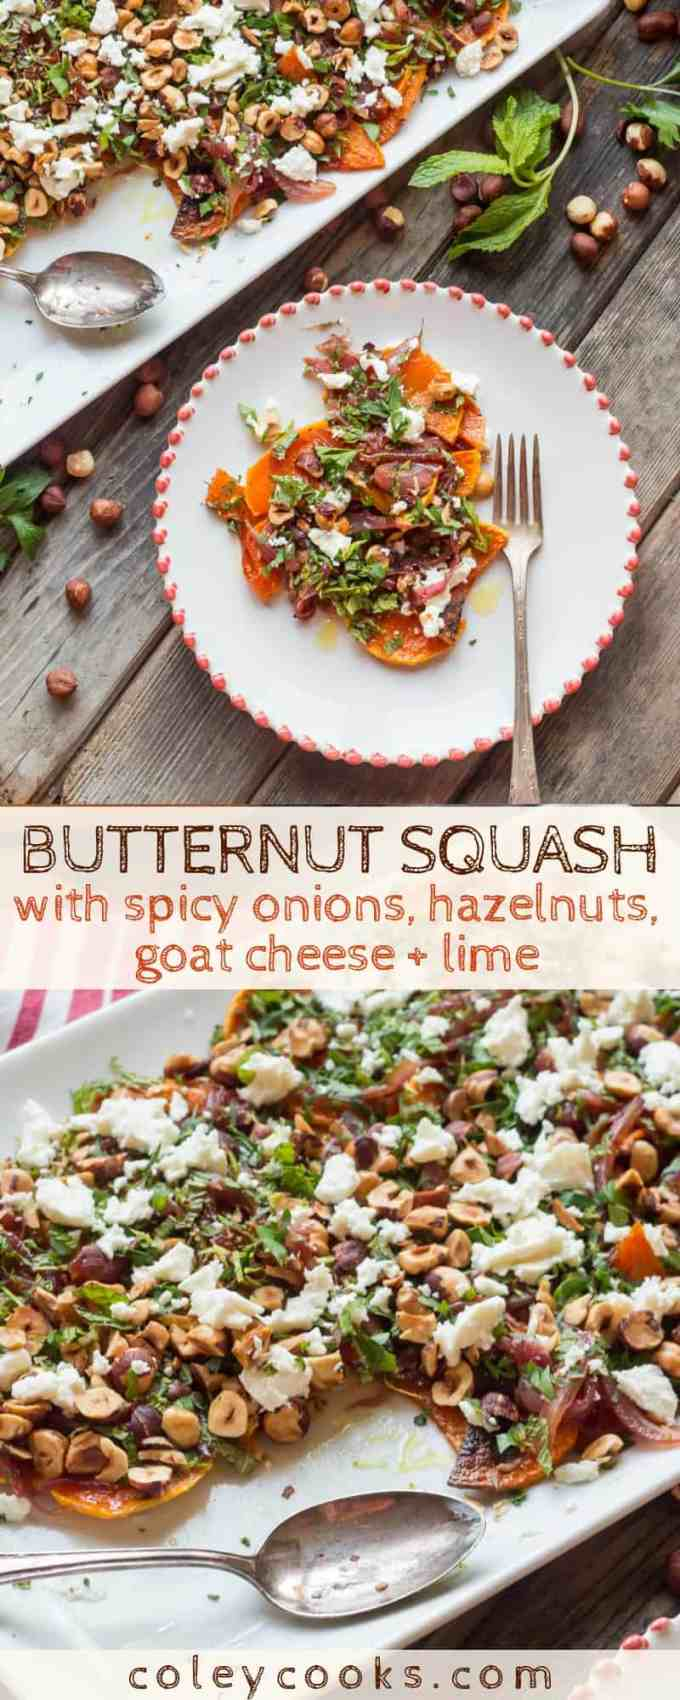 ROASTED BUTTERNUT SQUASH with spicy onions, hazelnuts, goat cheese + lime | Easy, flavorful butternut squash side dish recipe that's perfect for fall. So much texture! #thanksgiving #butternut #squash #recipe #hazelnut #spicy #easy | ColeyCooks.com